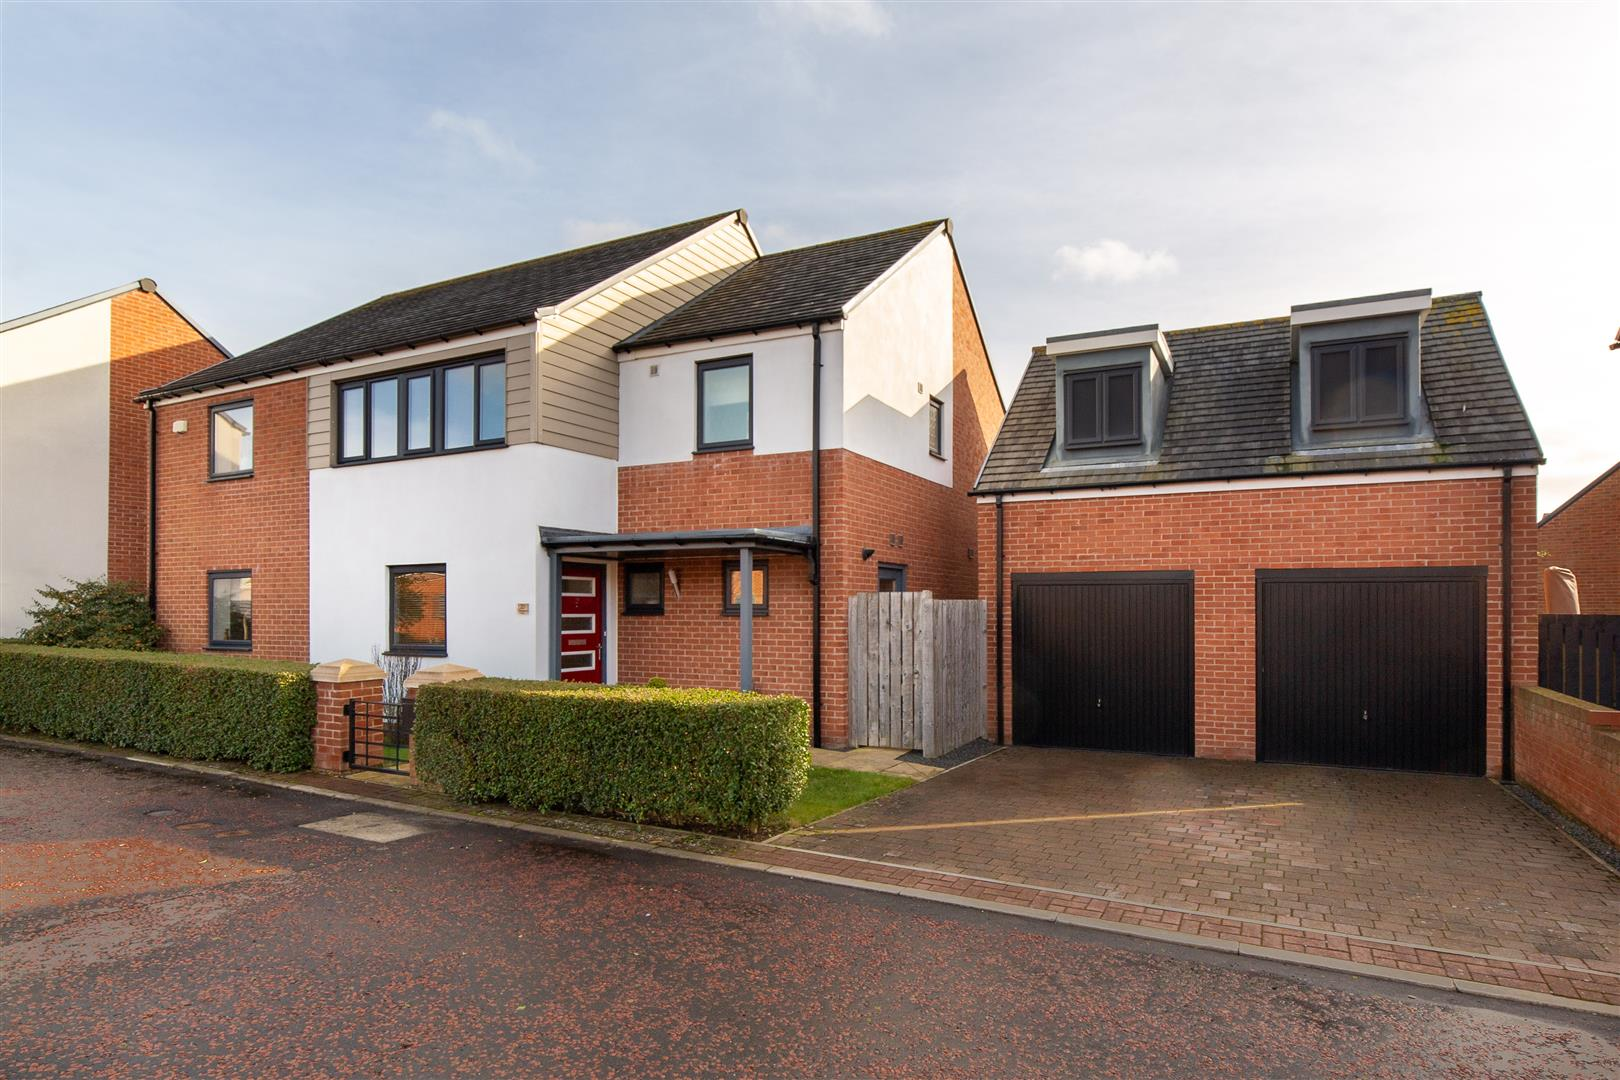 4 bed detached house for sale in Newcastle Upon Tyne, NE13 9AS  - Property Image 1